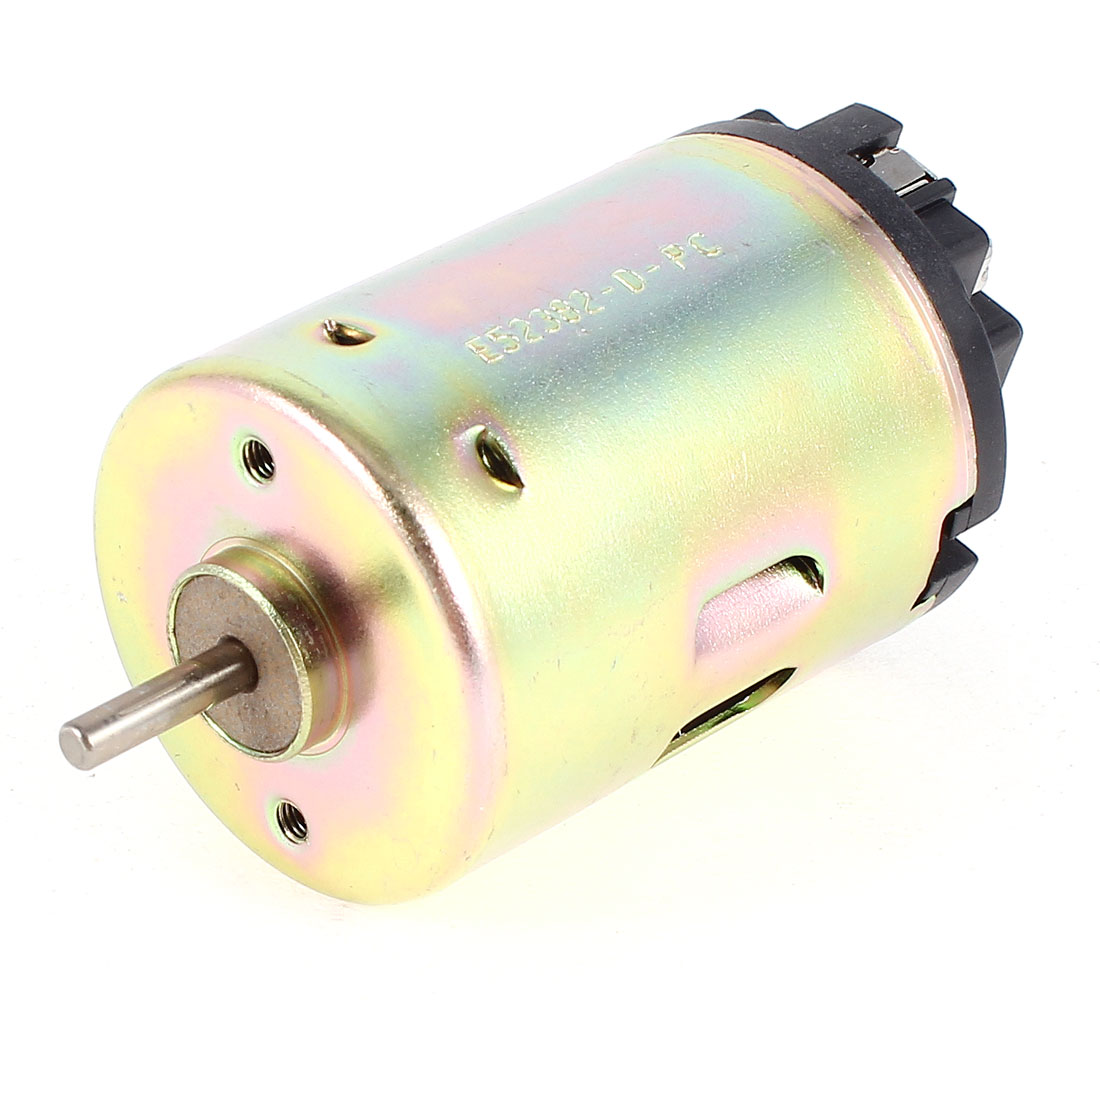 SN3658 DC 120V 8000RPM Speed 3mm Dia Shaft Cylinder Shaped Micro Electric Motor